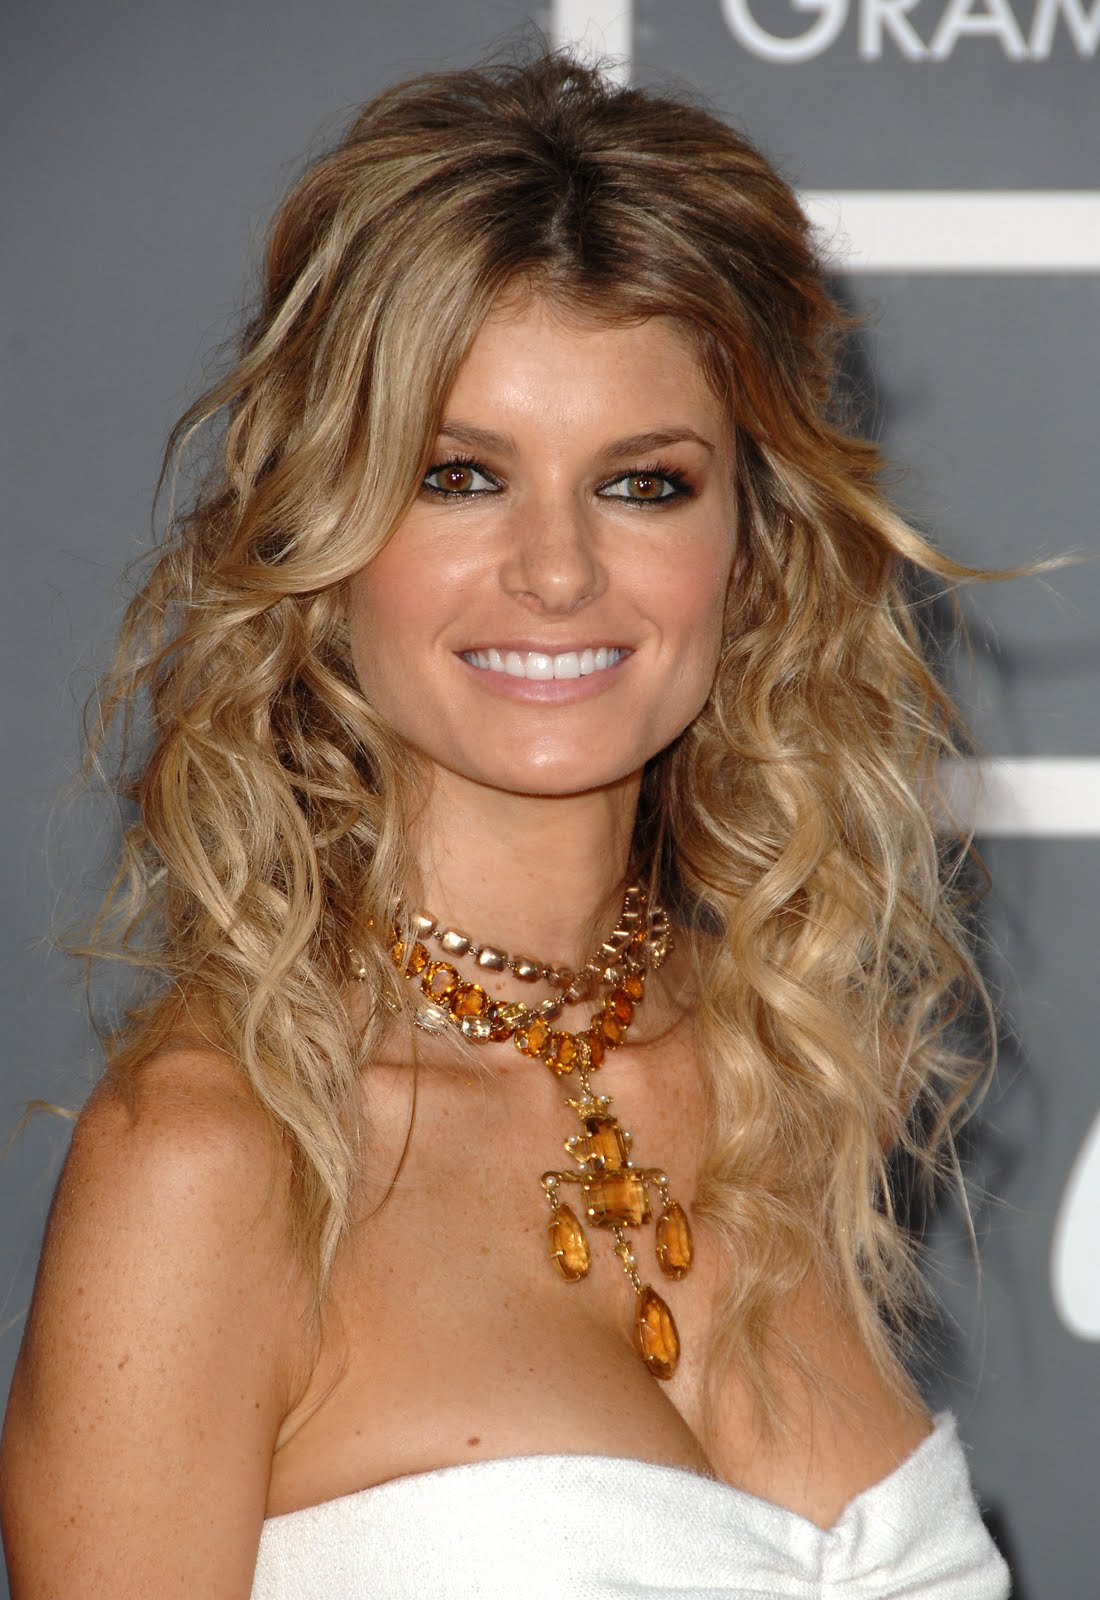 http://1.bp.blogspot.com/-eA34MP79jwY/Tlr6brO2LOI/AAAAAAAABG4/2wfv9RuOZkM/s1600/Marisa_Miller_Actress_Free_Download_High_Resolution_HD_HQ_Desktop_Backgrounds_Face_Wallpapers_21003.jpg